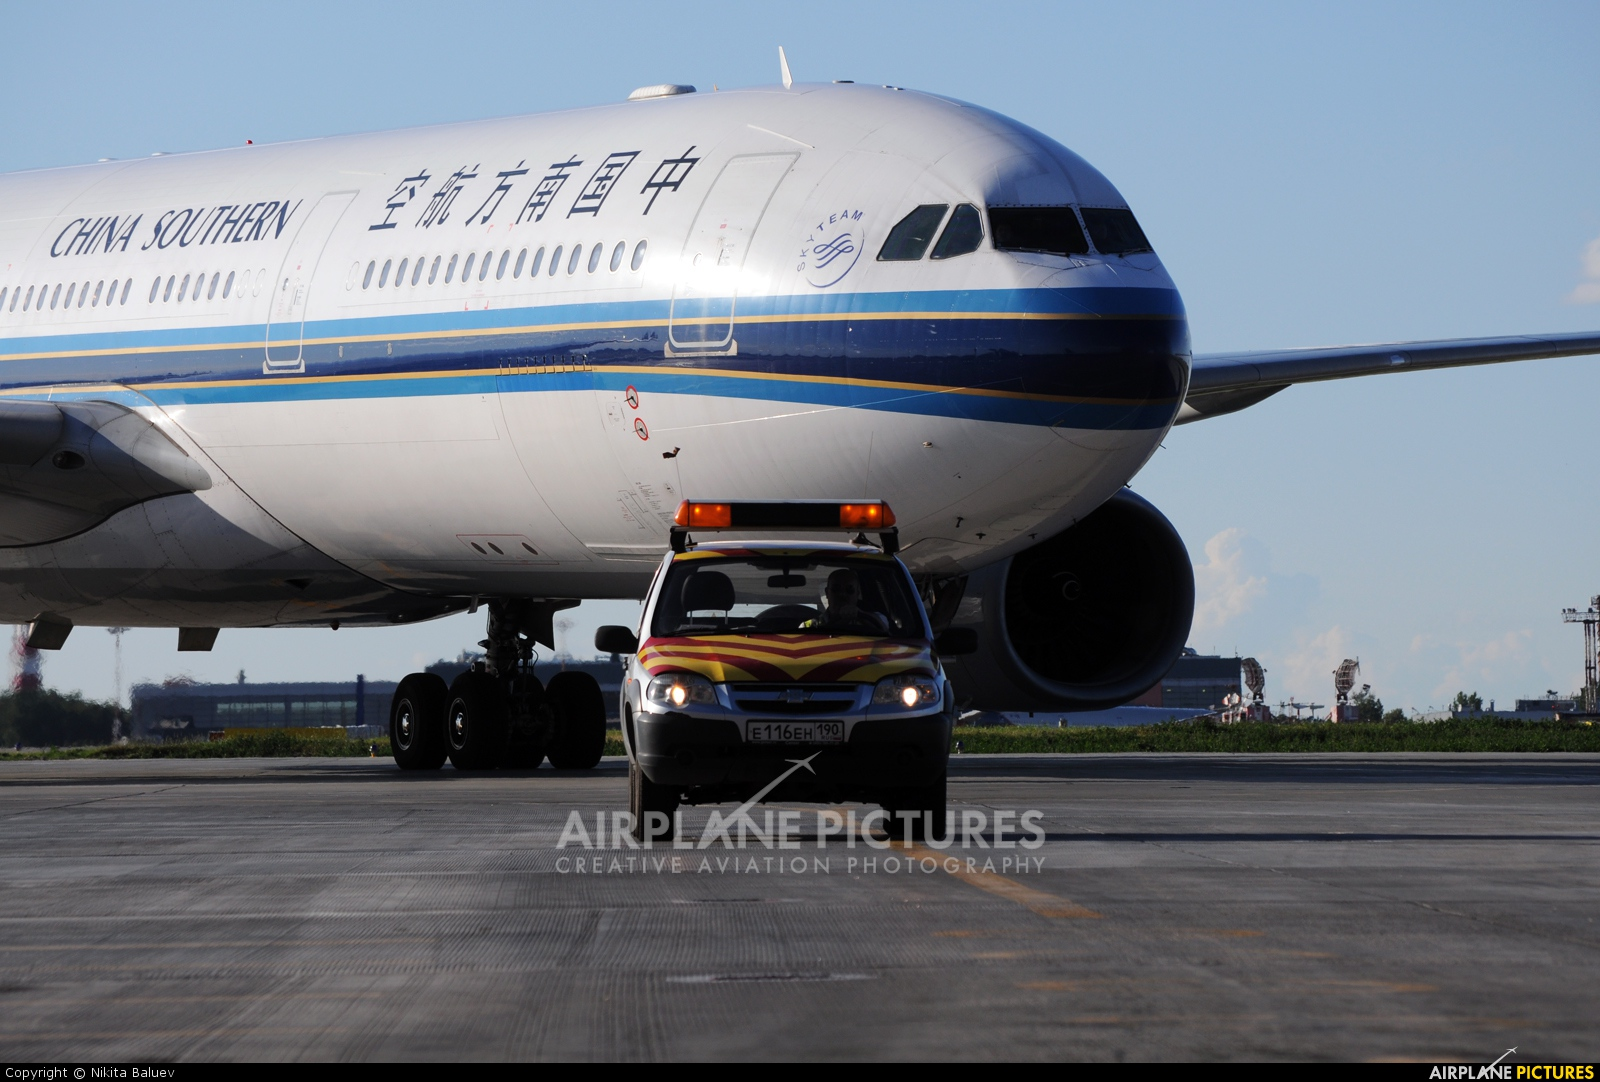 China Southern Airlines B-6111 aircraft at Moscow - Sheremetyevo